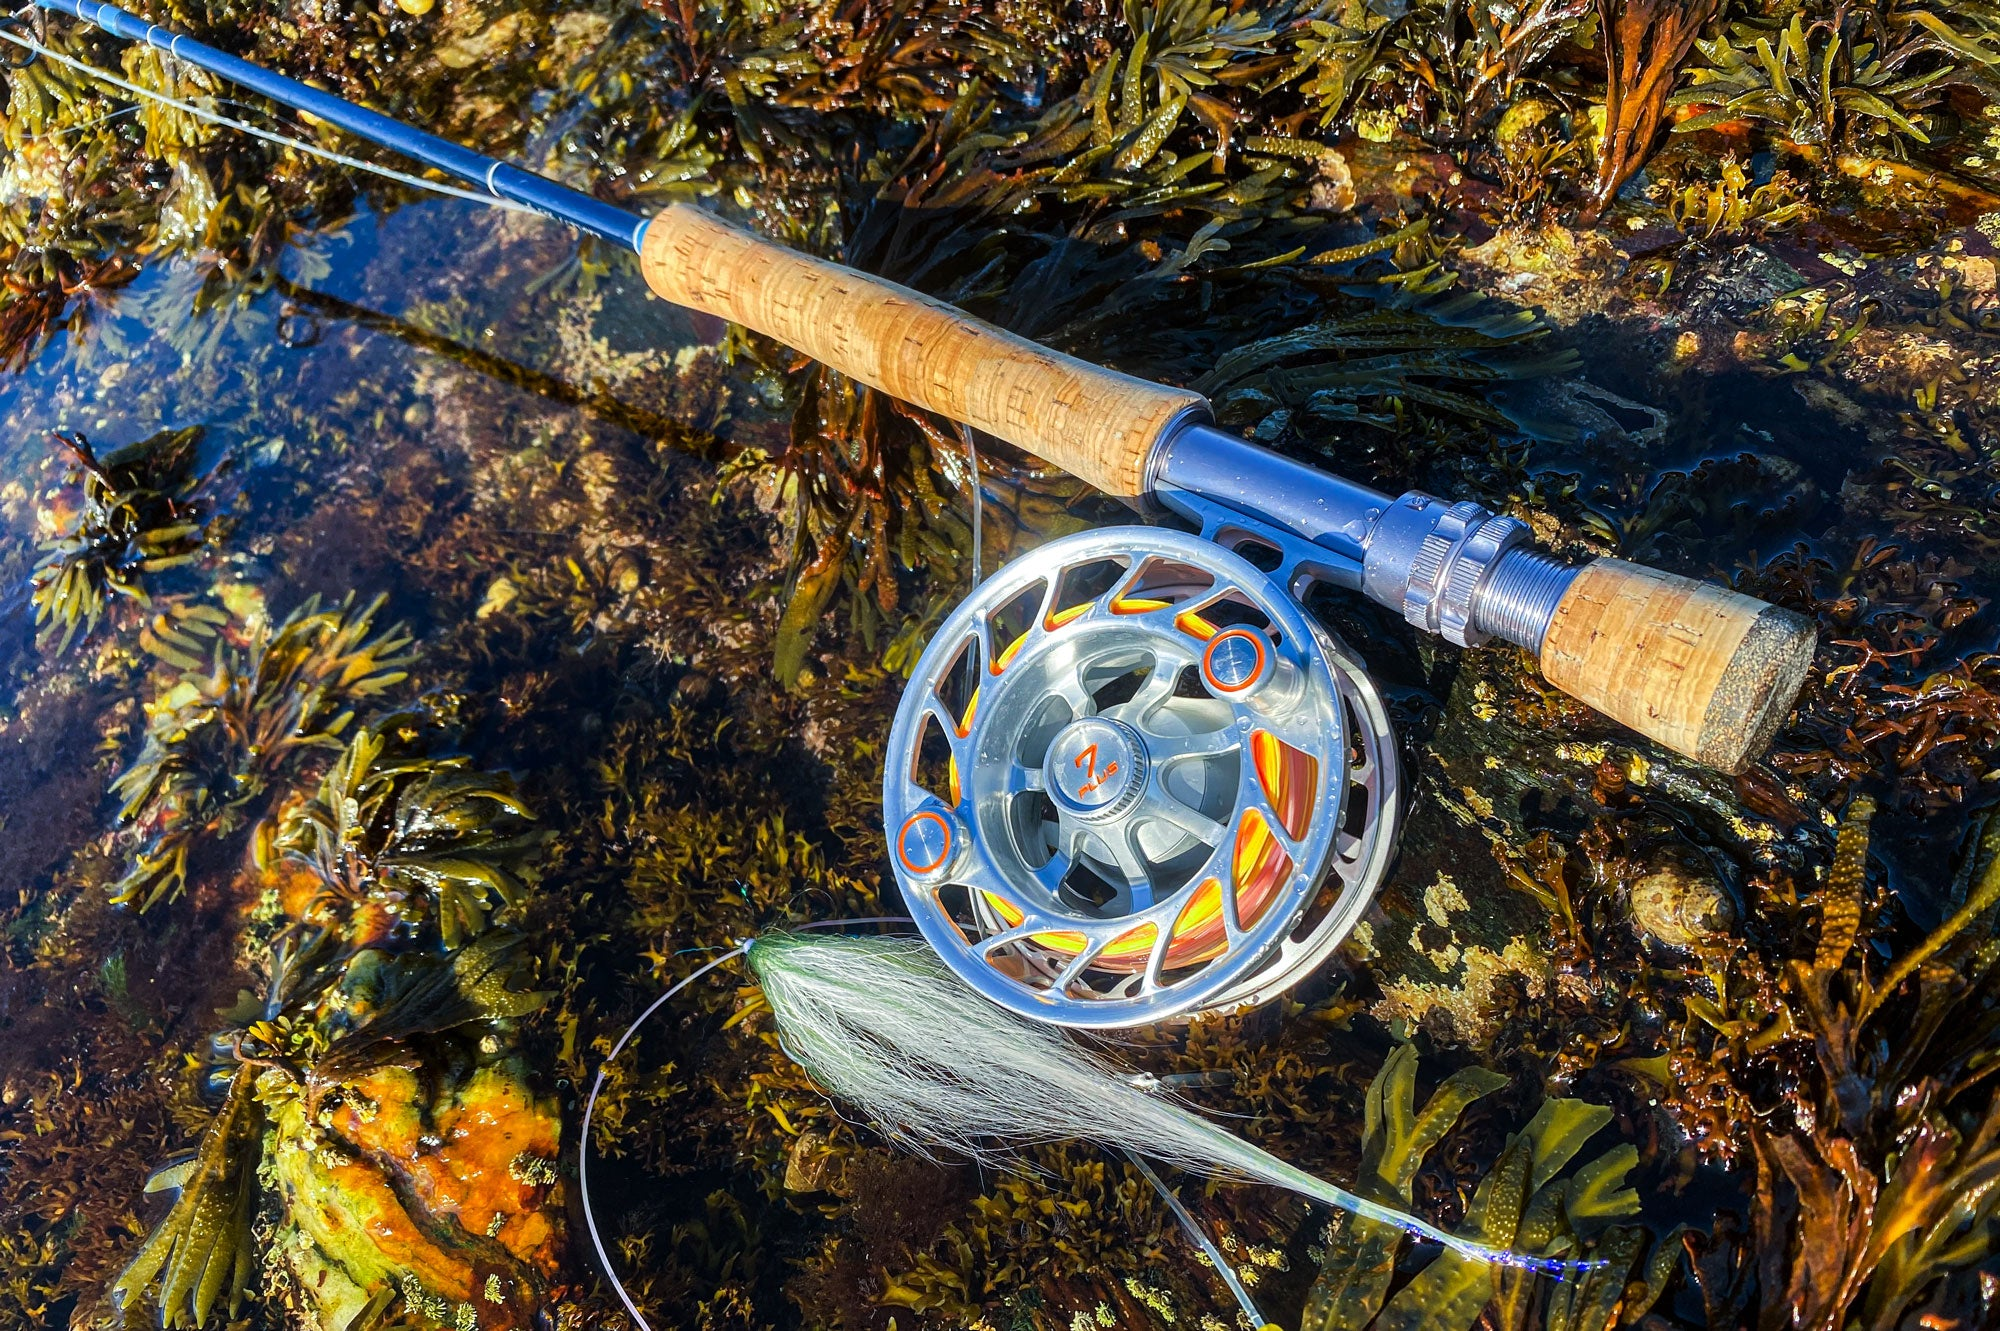 8wt Fly Reel Review